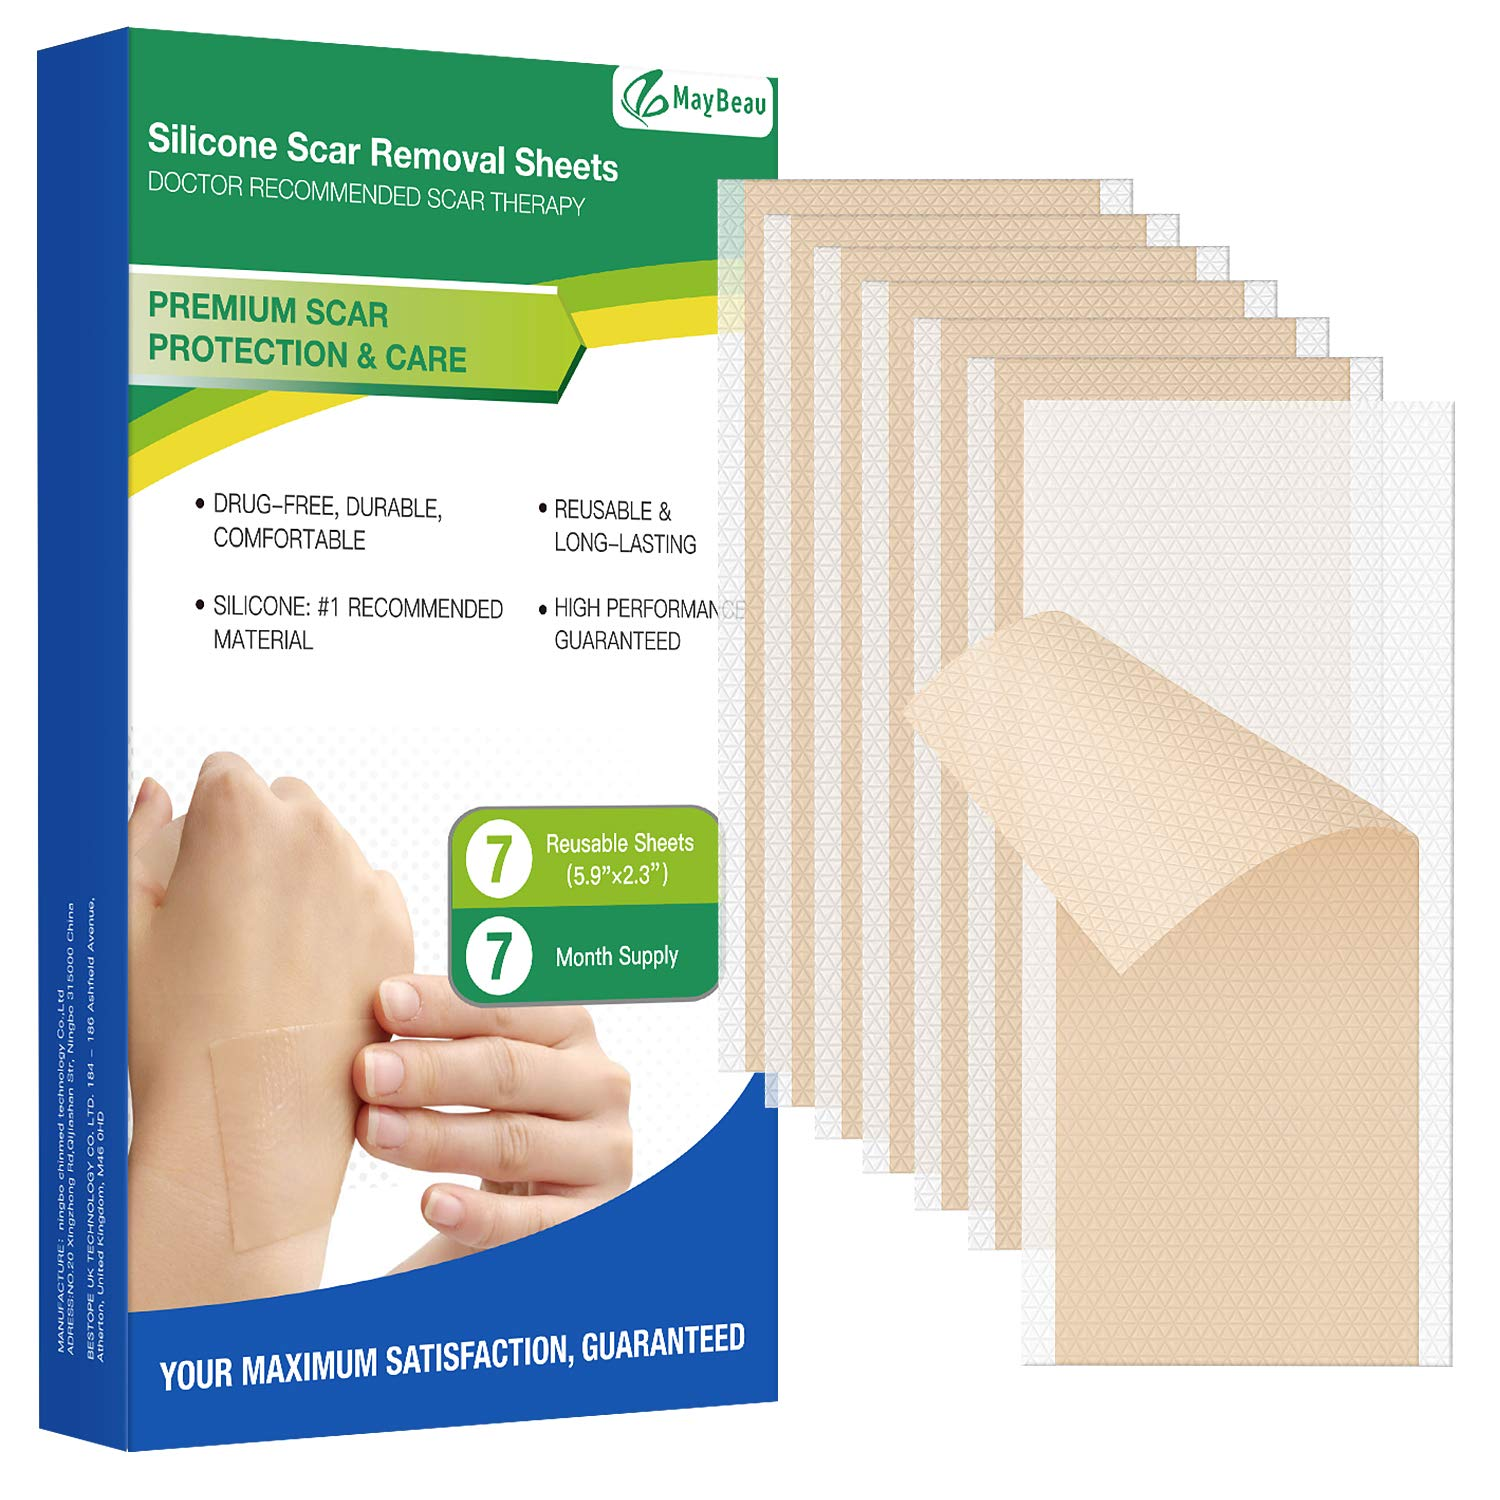 "MayBeau Silicone Scar Sheets, 7 PCS Sheets (7 Month Supply) Medical Silicone Scar Patch for Soften and Flattens Old & New Scars on Keloid Surgery Injury Burns Acne C-Section Scars and More (5.9""×2.3"")"